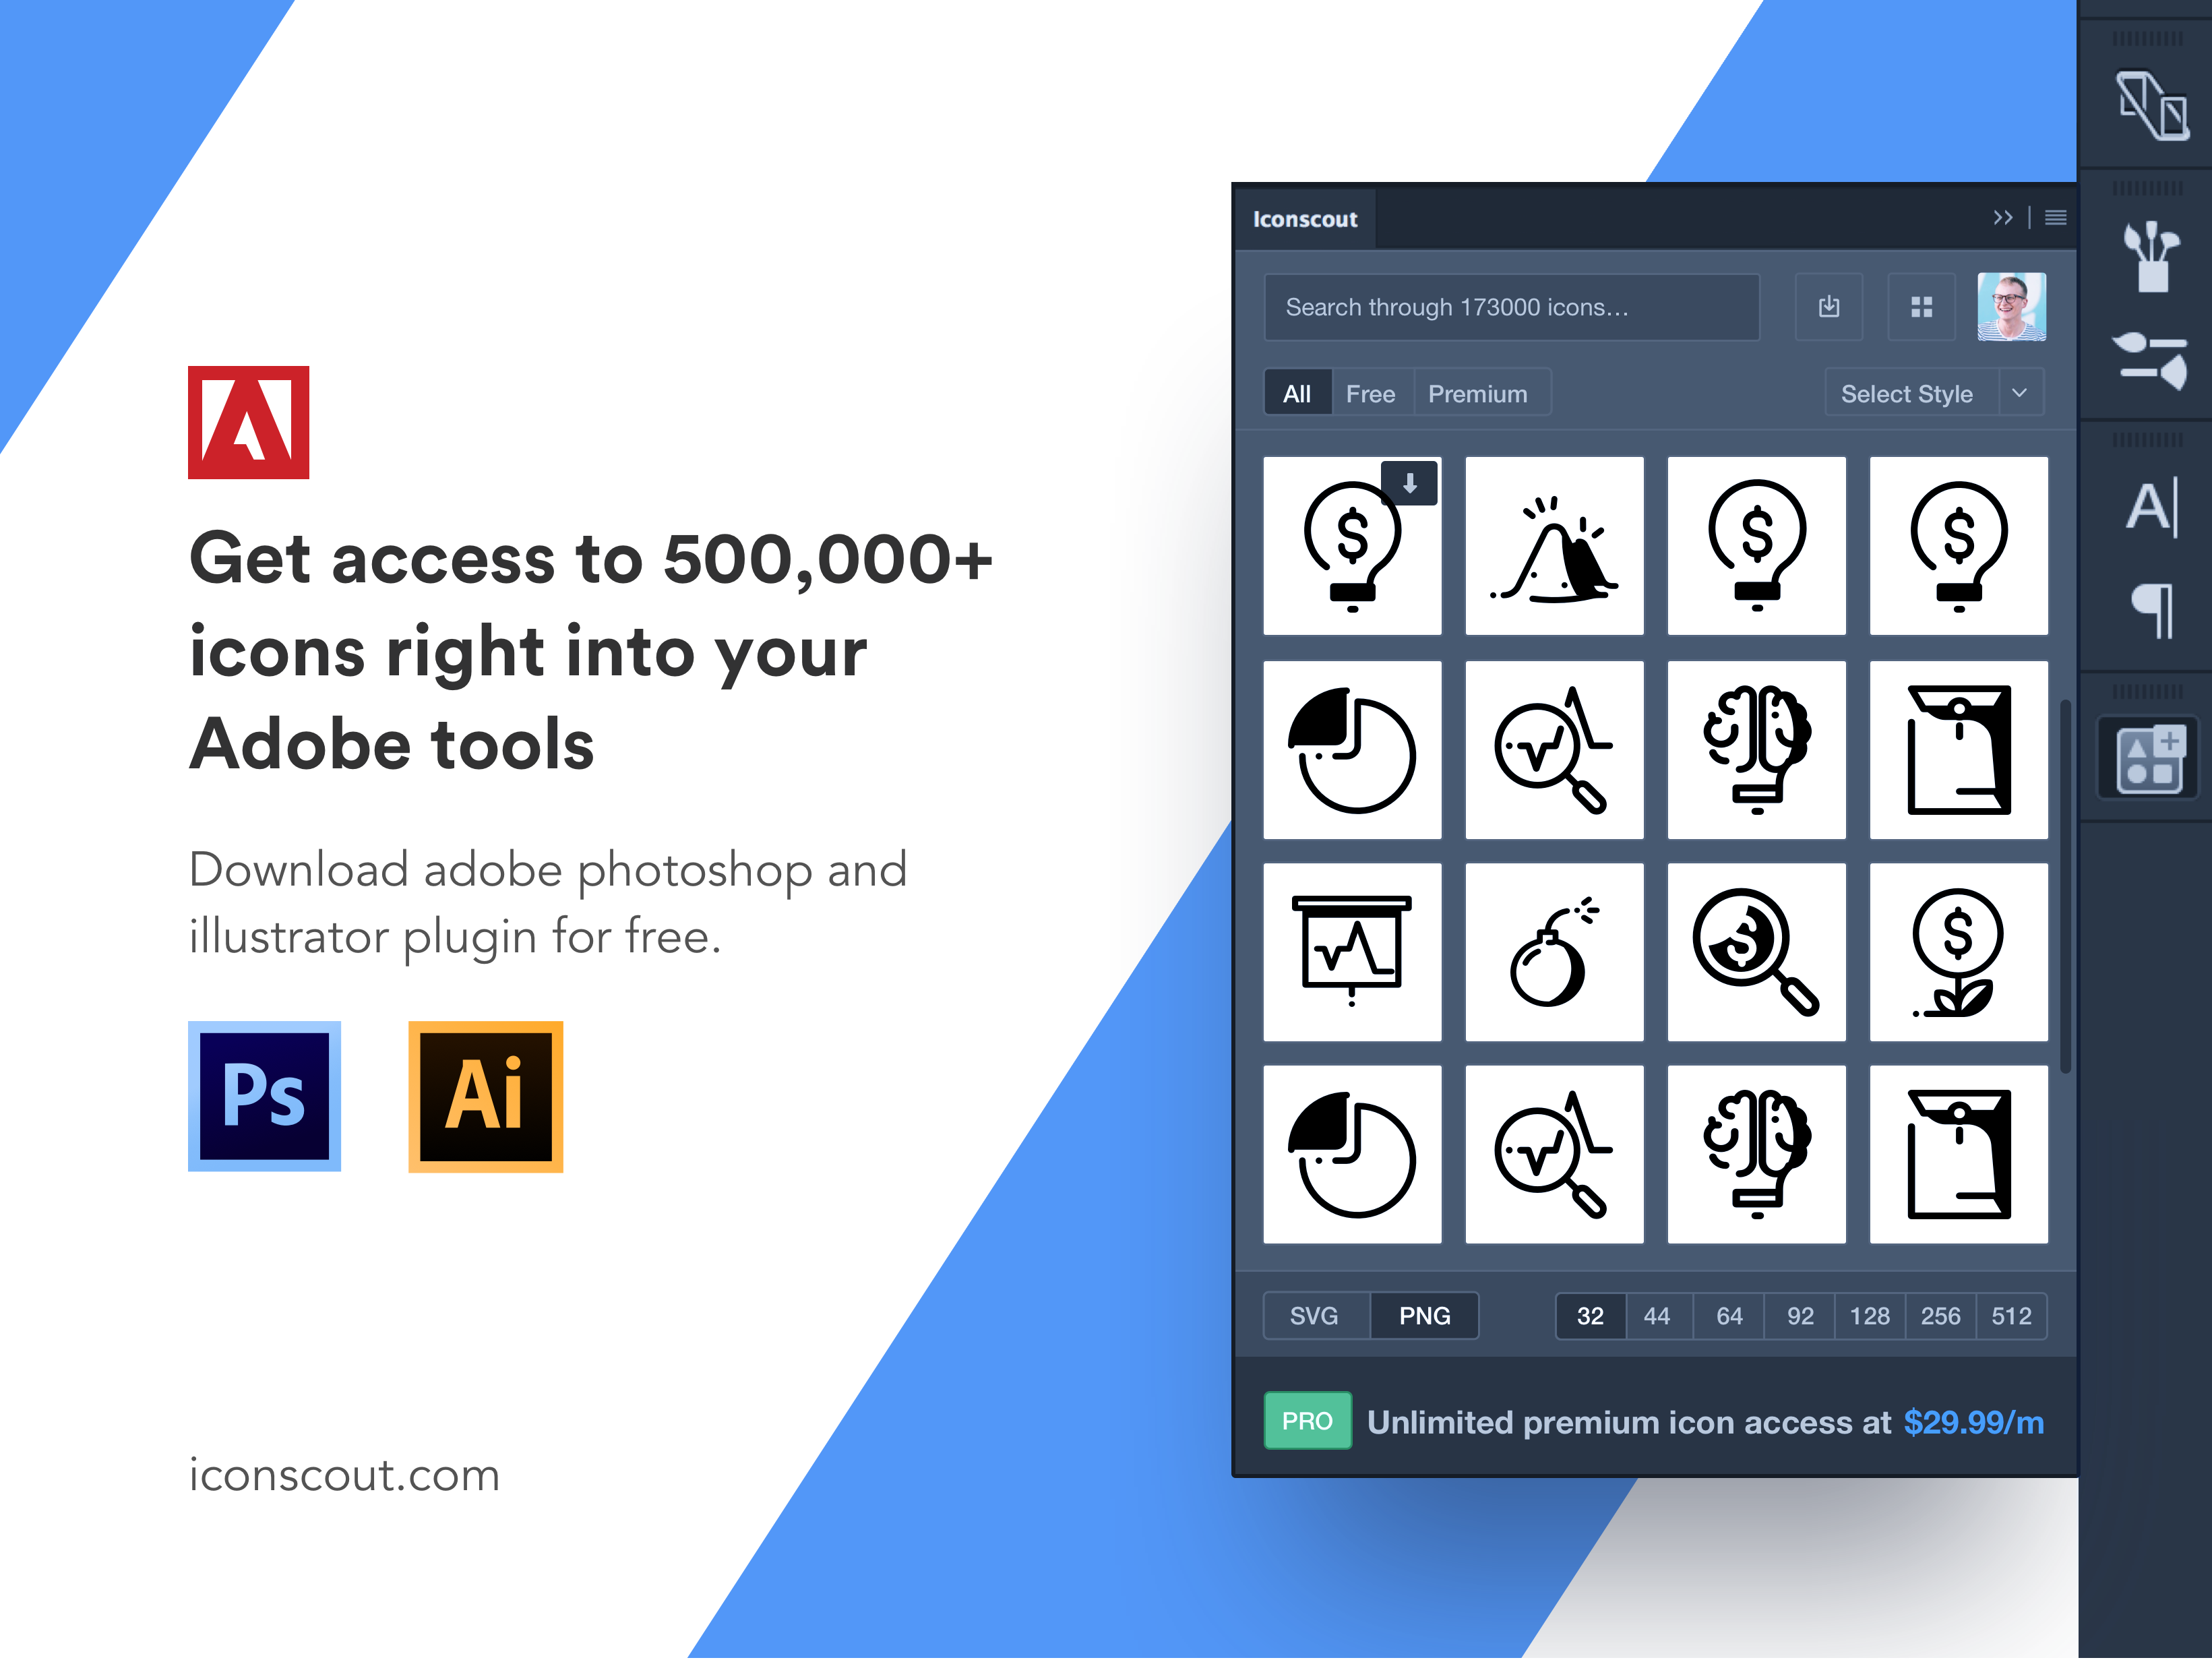 Icondrop - How to install and use? - Iconscout